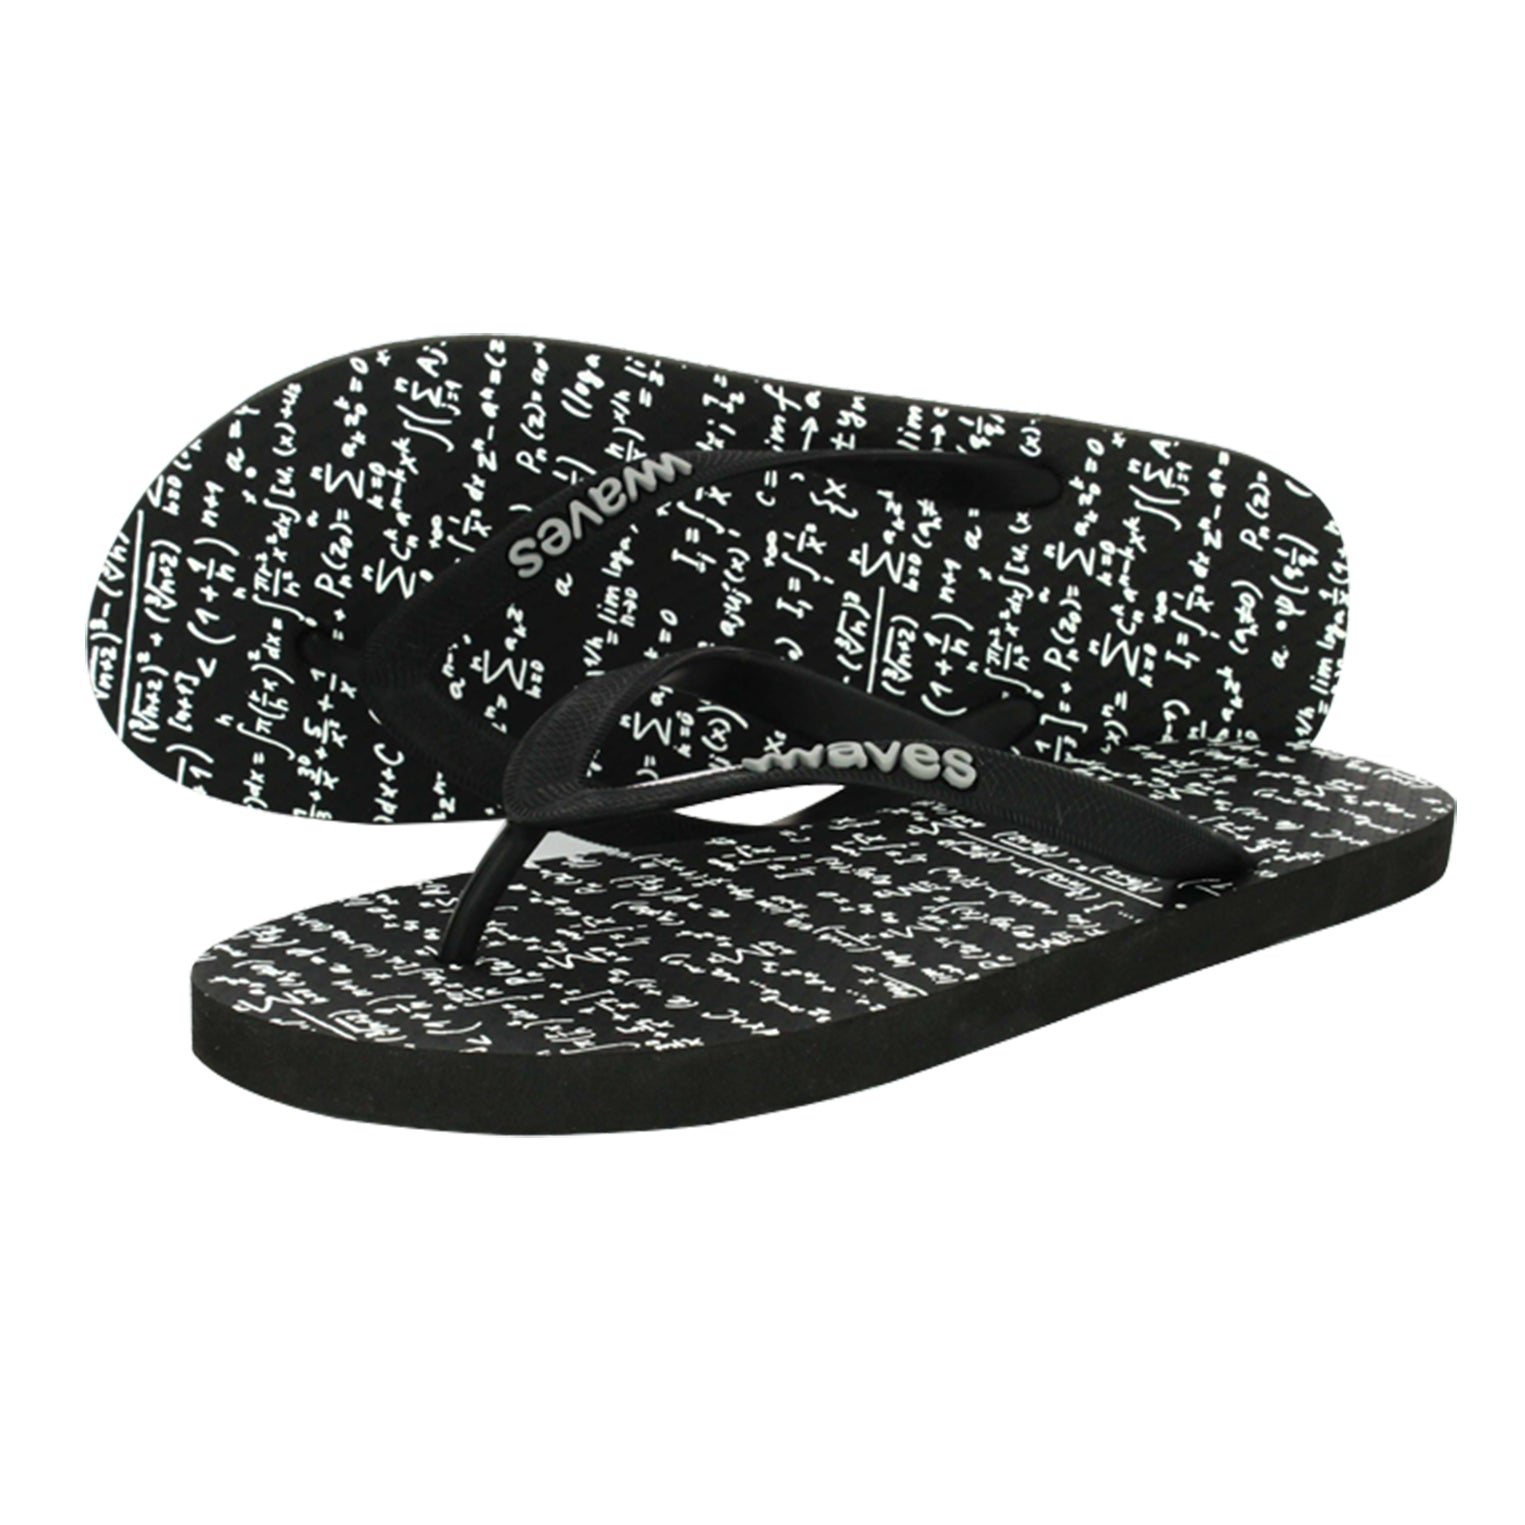 Math Equation Men's Flip Flops